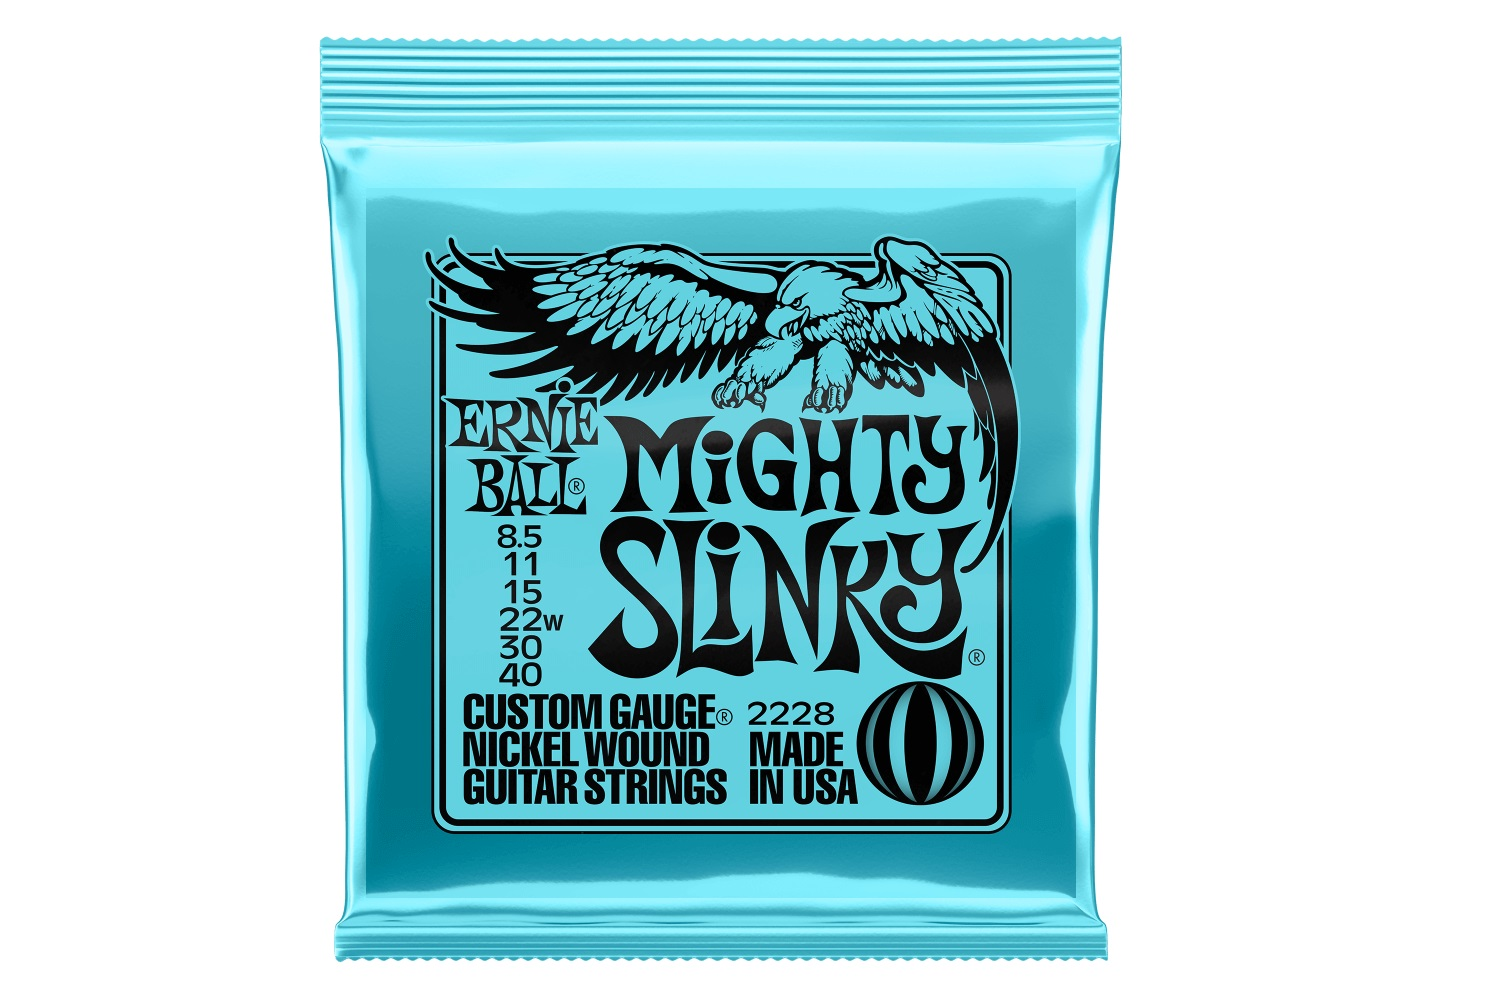 ERNIE BALL MIGHTY SLINKY NICKEL GUITAR STRINGS 2228